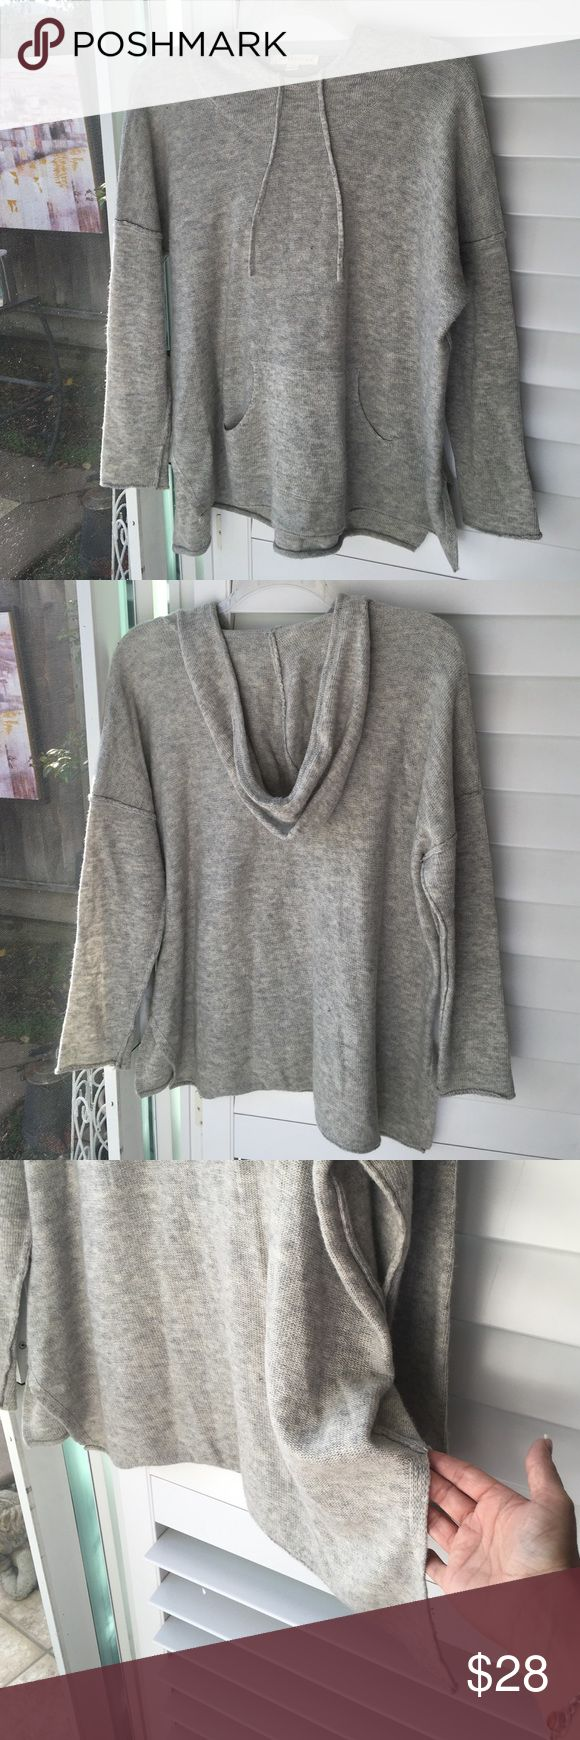 "✨NEW!✨ Amazing Soft Knit Hooded Sweatshirt EUC! This is the one you want to be wearing while you catch up on all those Oscar-nominated movies this weekend or a walk in the park! So cozy and soft! Hooded, pockets. Fun 6"" slits on the side. Pure fabulous!  Heather gray and worn-once EUC! Is it to be yours? Price firm. 😍 Lovestitch Tops"